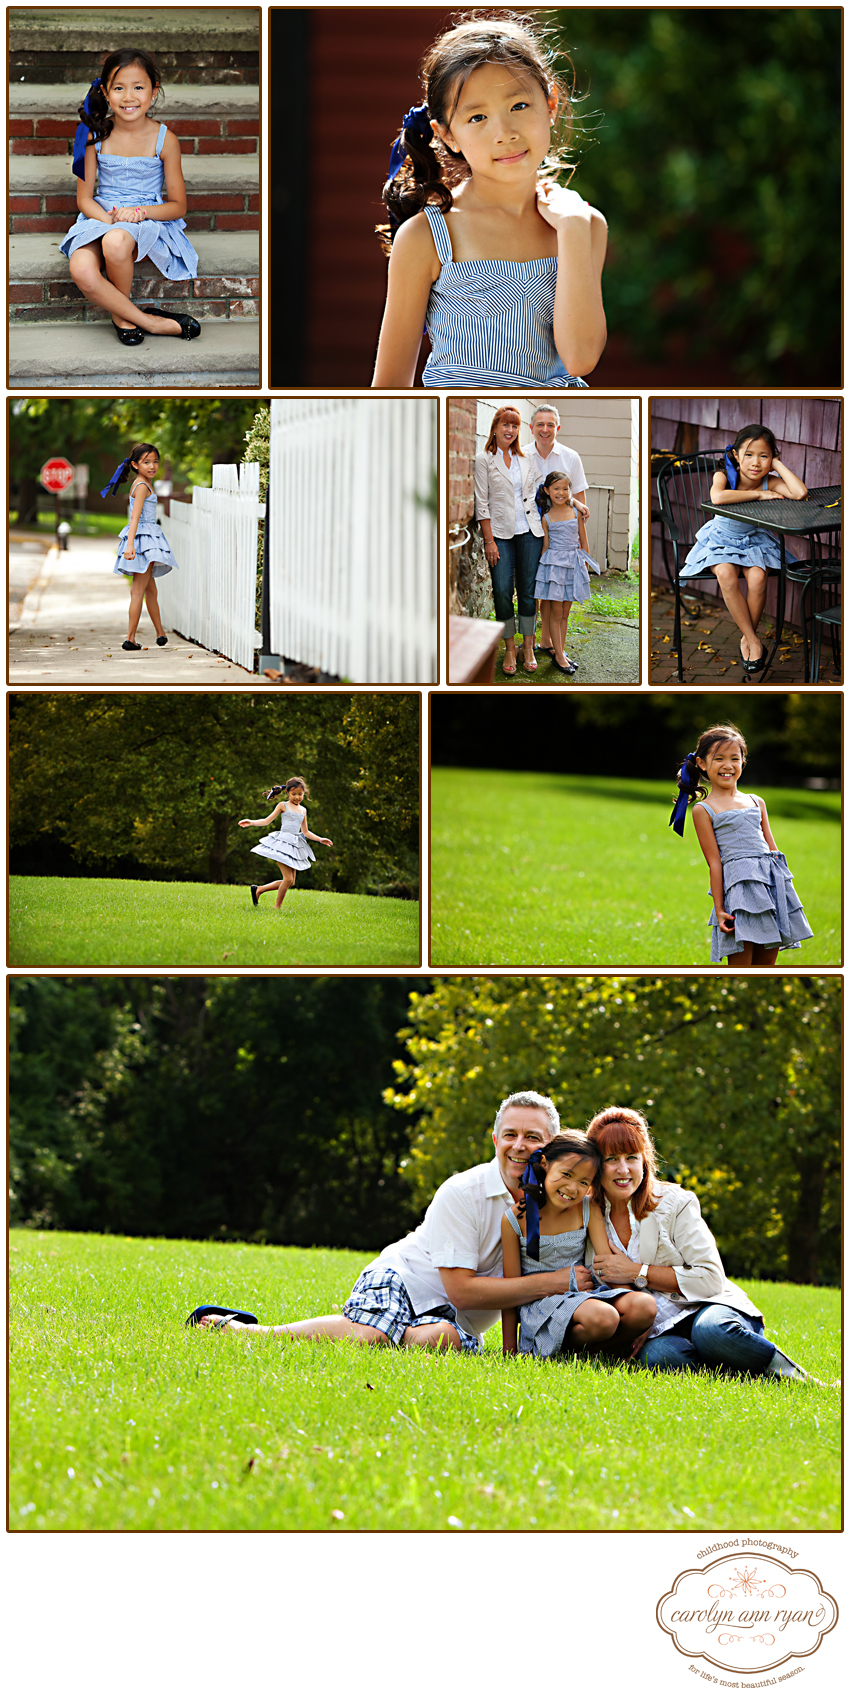 Family Portrait Session in Basking Ridge, NJ